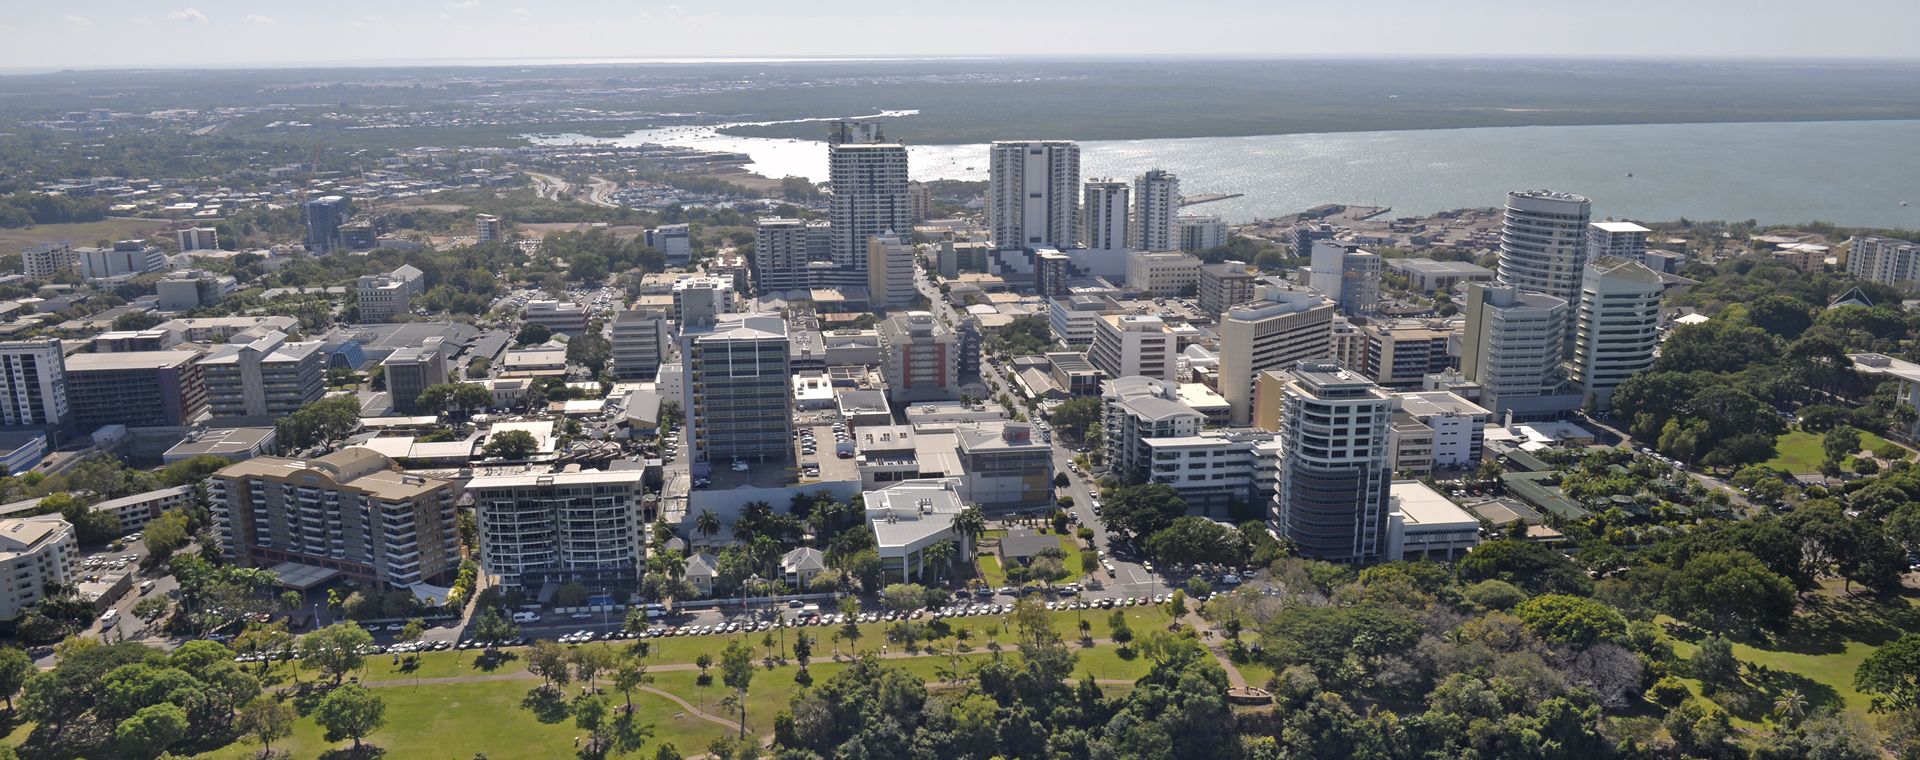 Aerial view of Darwin city